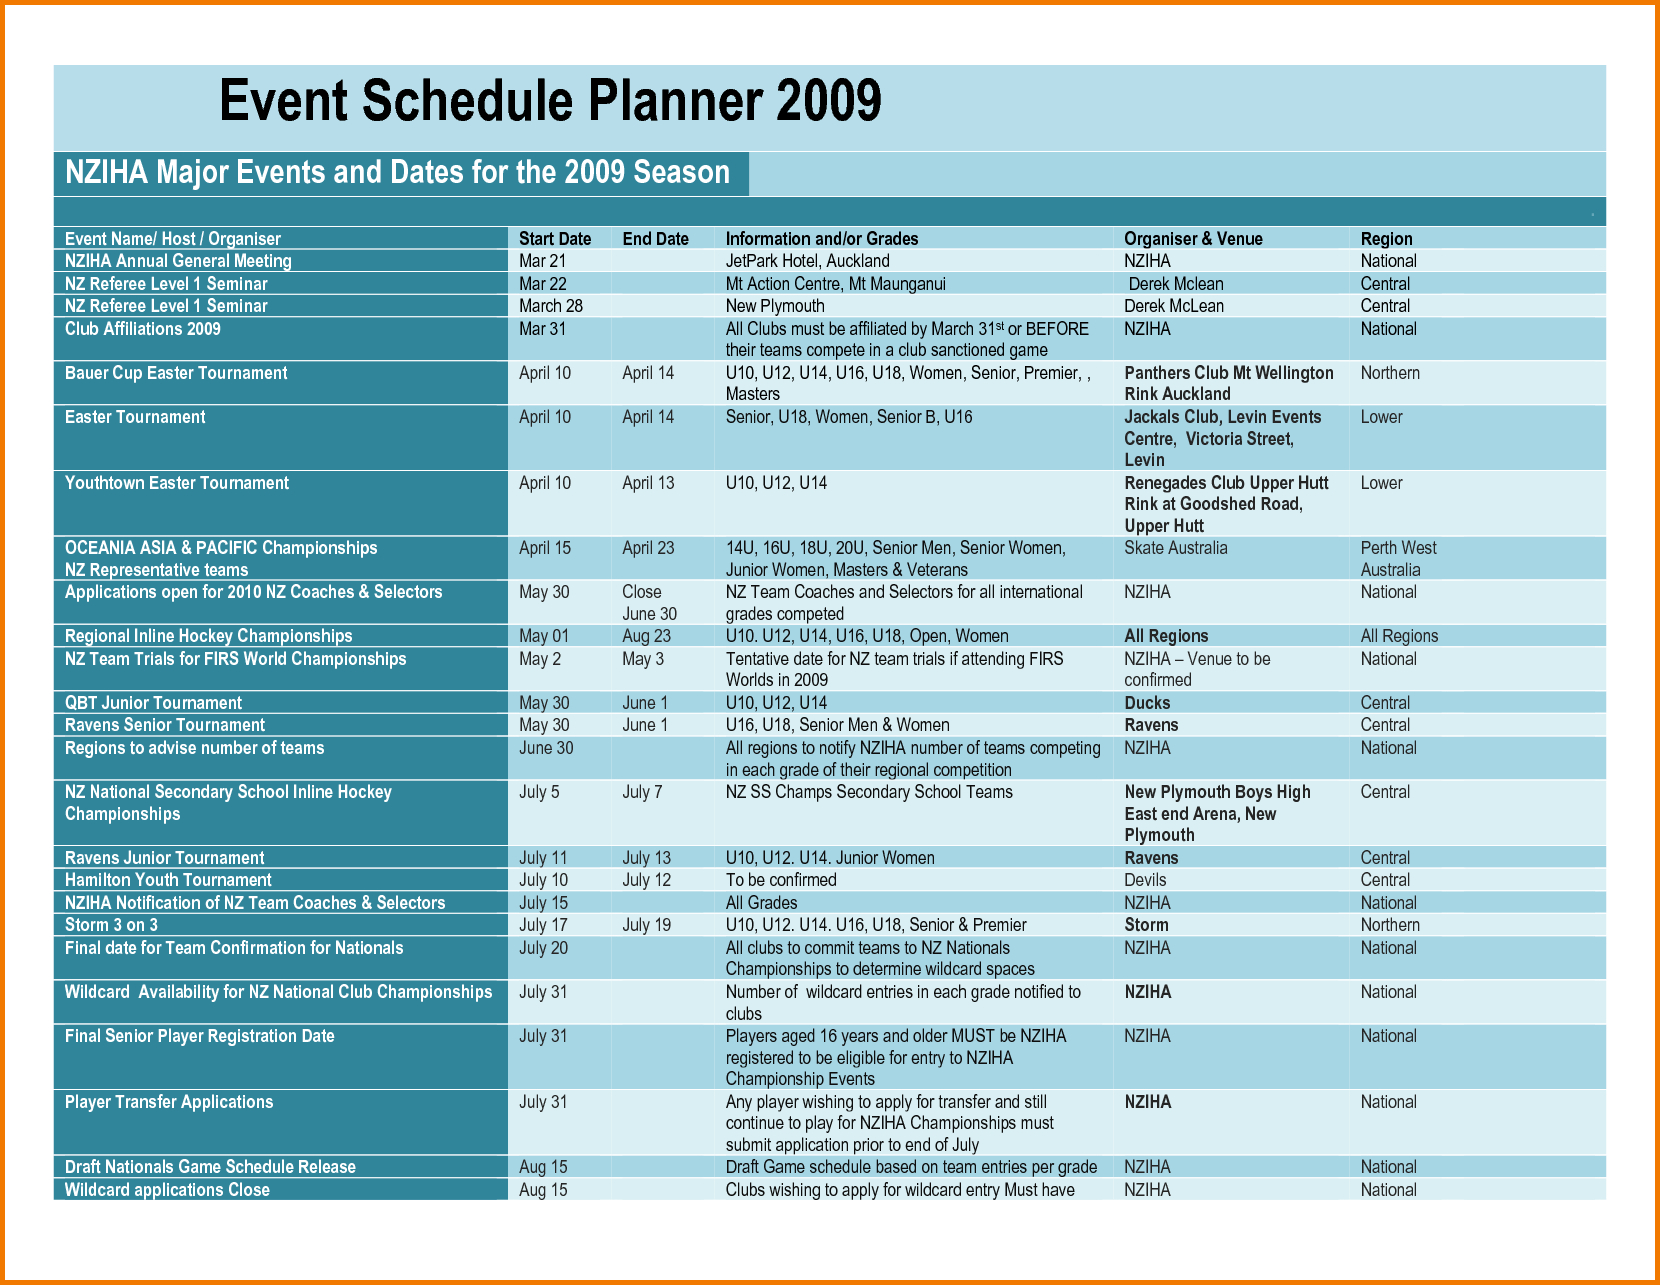 Event Schedule Template | Authorization Letter Pdf intended for Event Schedule Planner Template